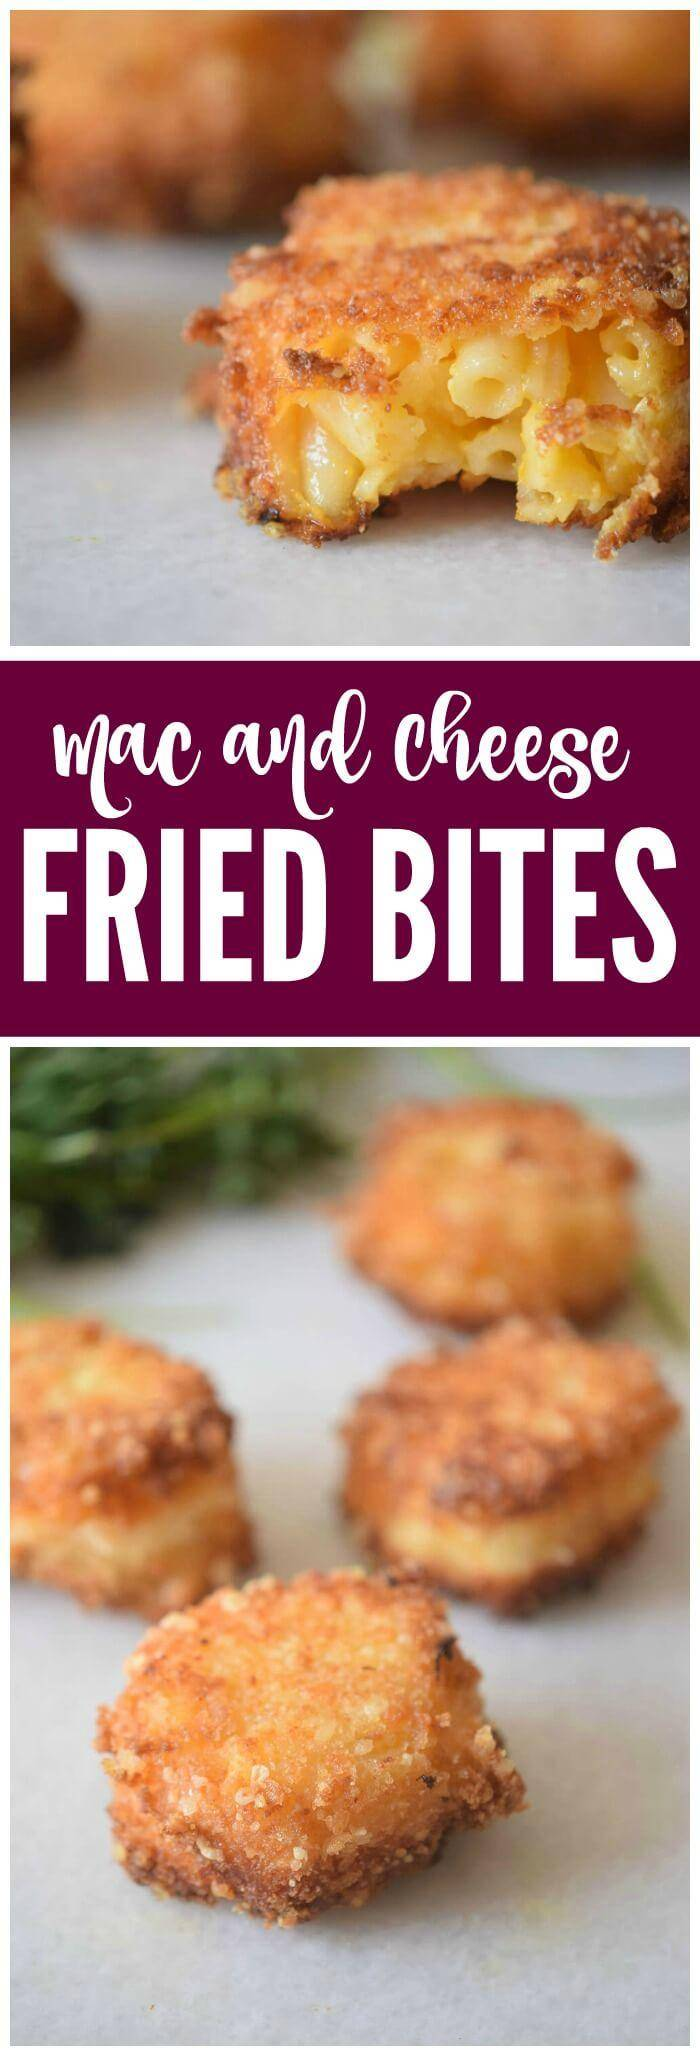 Fried Mac & Cheese Bites Recipe! Easy and Homemade the PERFECT Party Recipe or Snack for Friends!